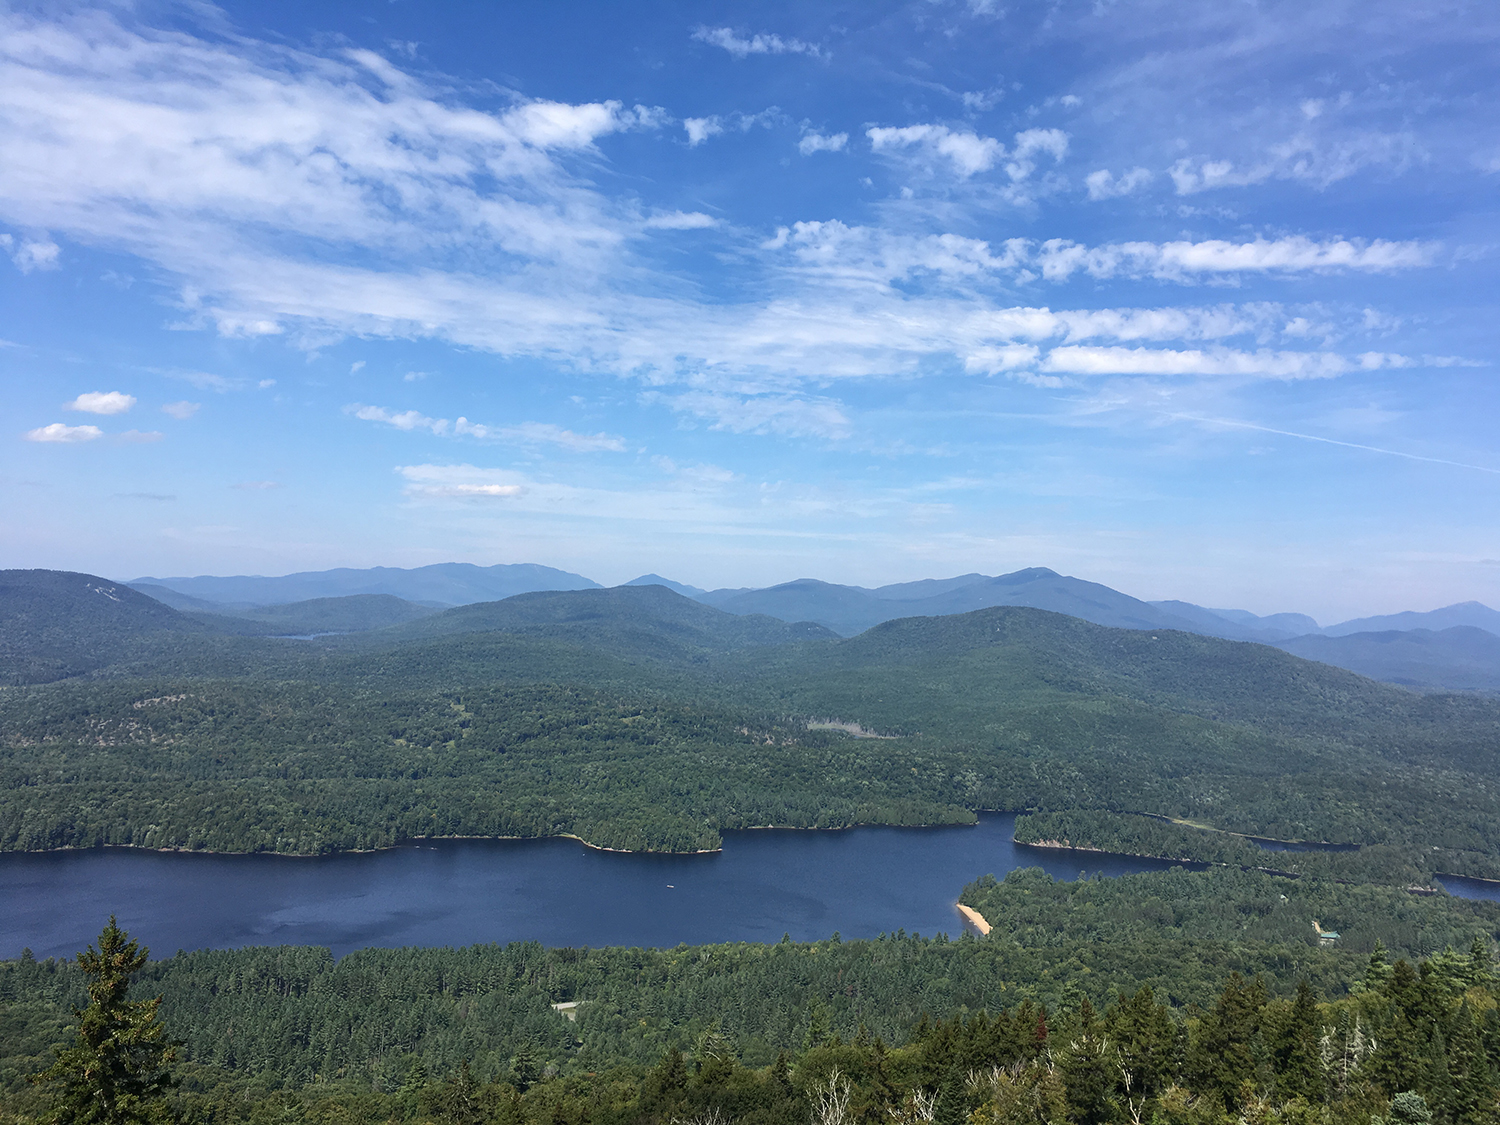 Fire tower north to Rich Lake and High Peaks.  Tom O'Grady